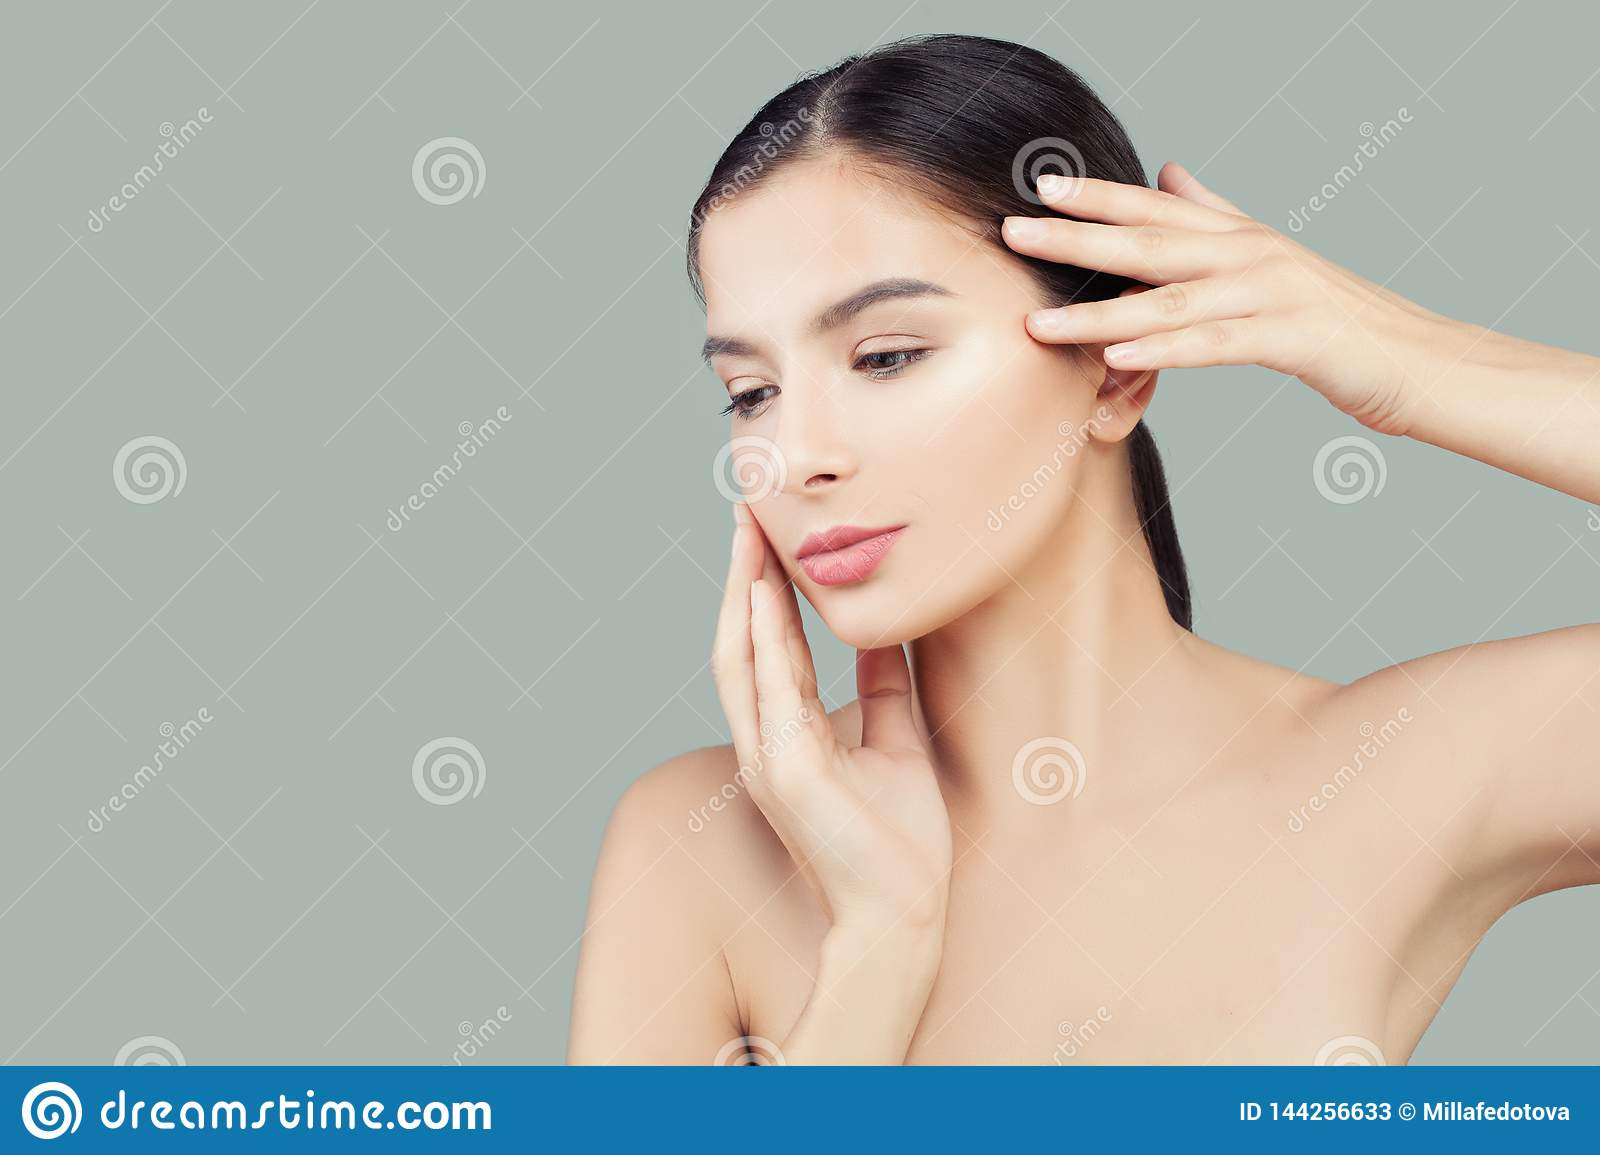 Beautiful woman spa model with healthy clear skin. Facial treatment and skin care concept